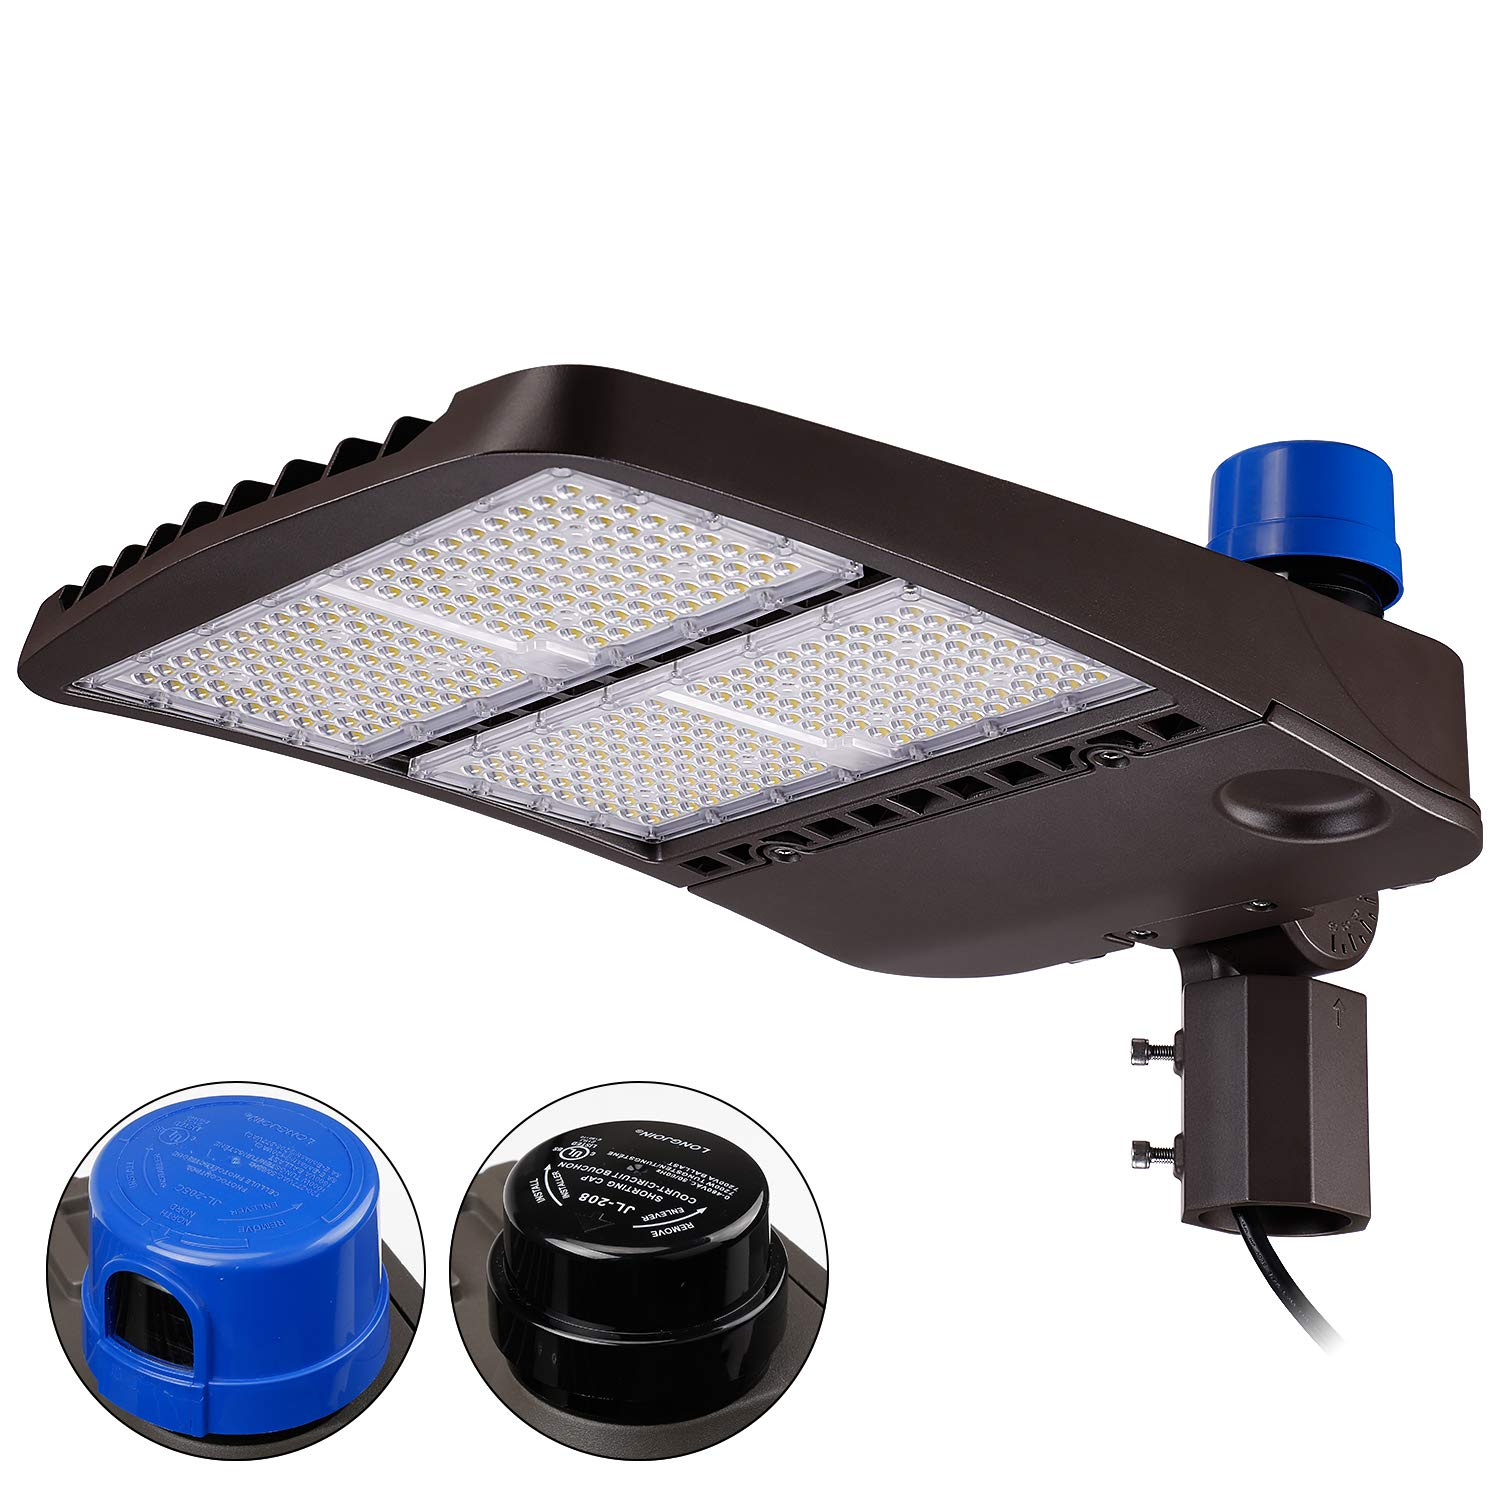 LEONLITE LED Parking Lot Light with Photocell, 39,000lm, IP65 Waterproof, 300W (3000W Eqv.) Shoebox Lighting, Slipfitter Bracket, UL & DLC Listed, for Expressway, Street, Stadium, 5 Years Warranty 141[並行輸入] B07M8QN6JQ